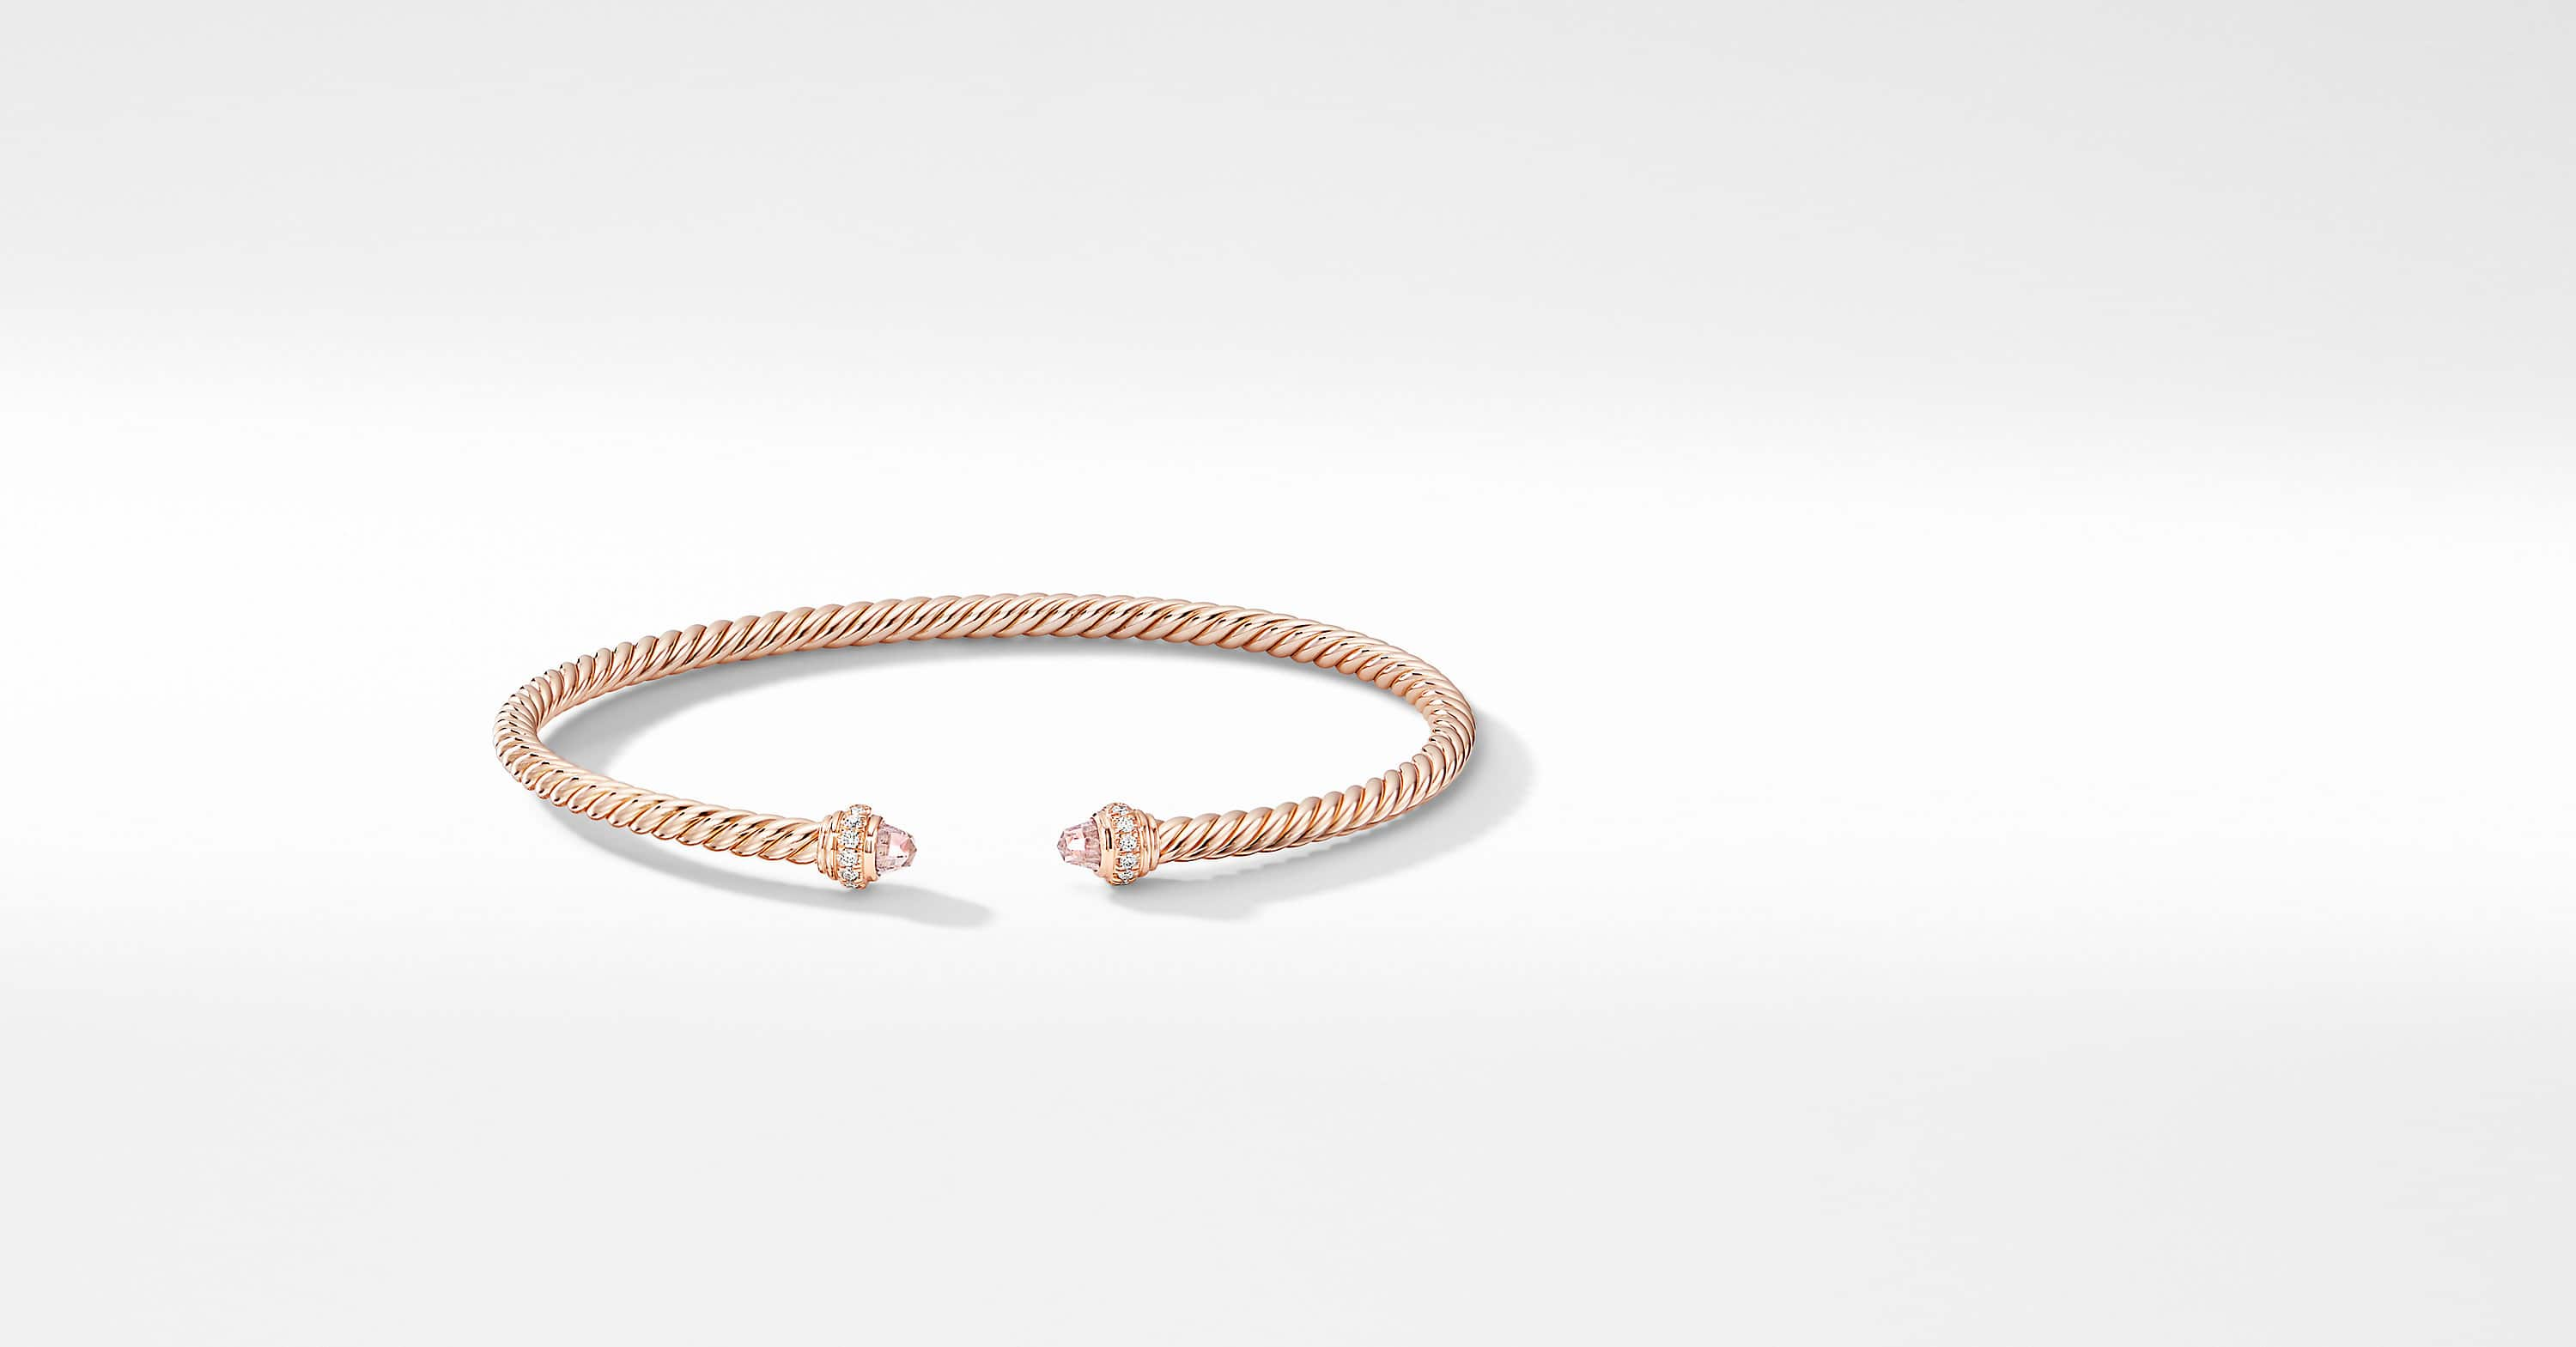 Cablespira Color Bracelet in 18K Rose Gold with Diamonds, 3mm